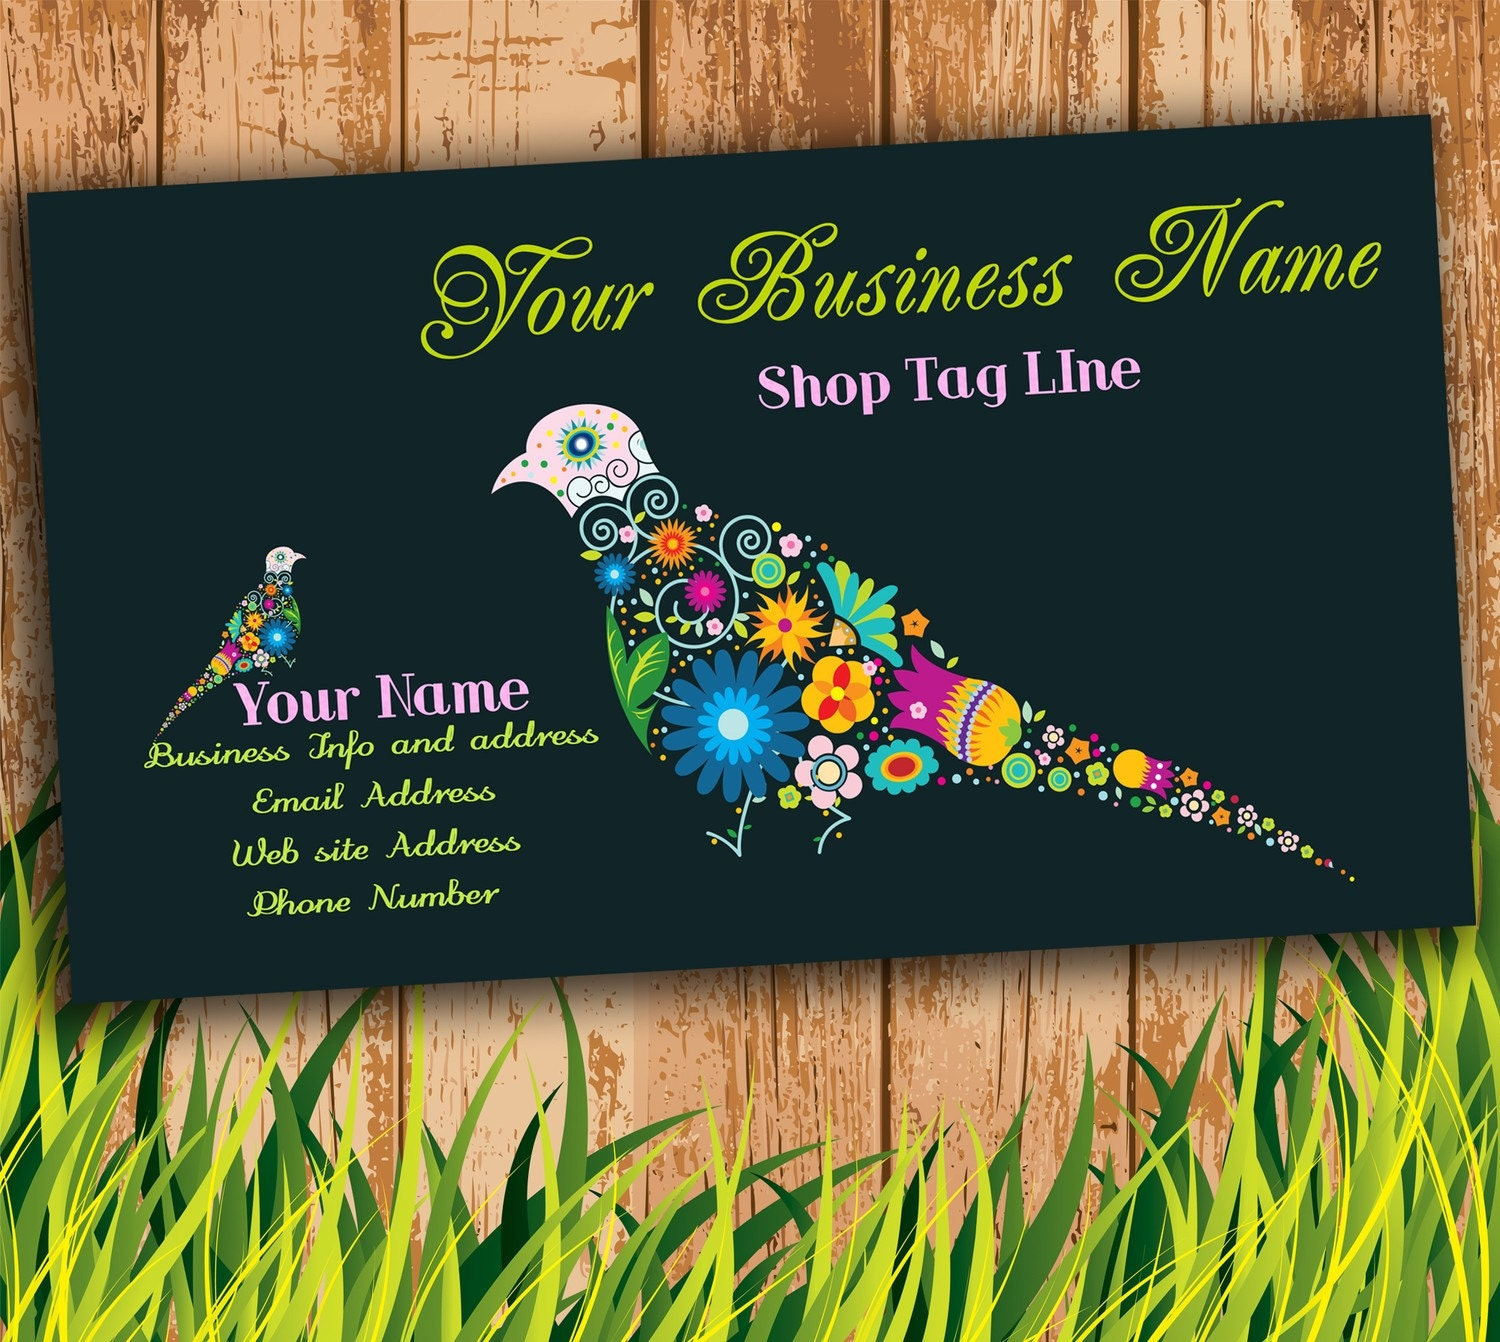 Funky funky business cards collection business card ideas etadam nikki makes scents sometimes funky business cards colourmoves